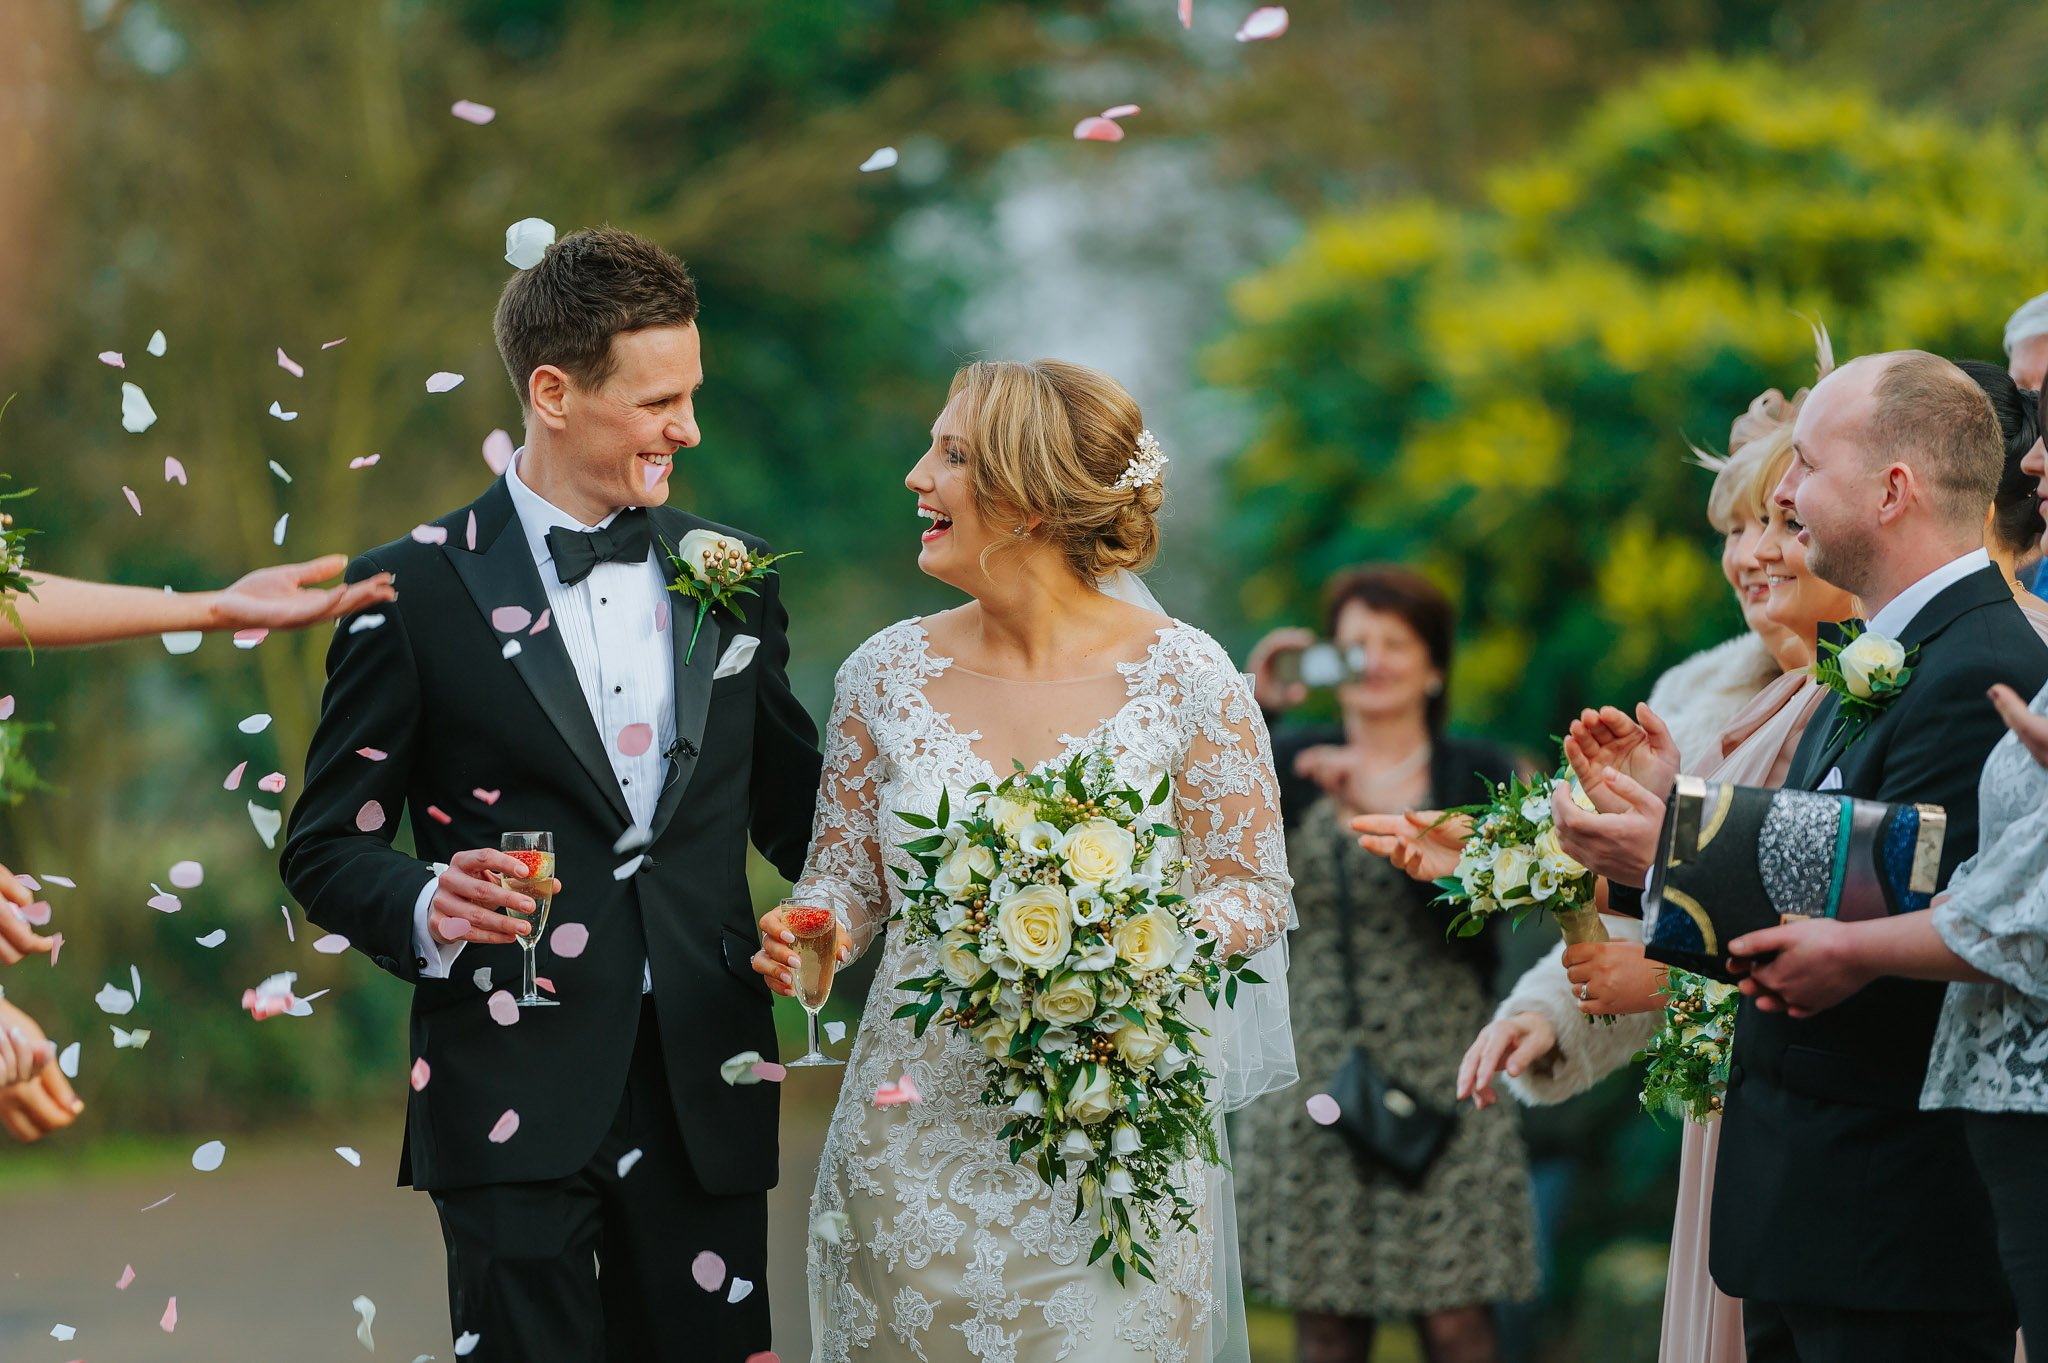 Coombe Abbey wedding in Coventry, Warwickshire - Sam + Matt 22